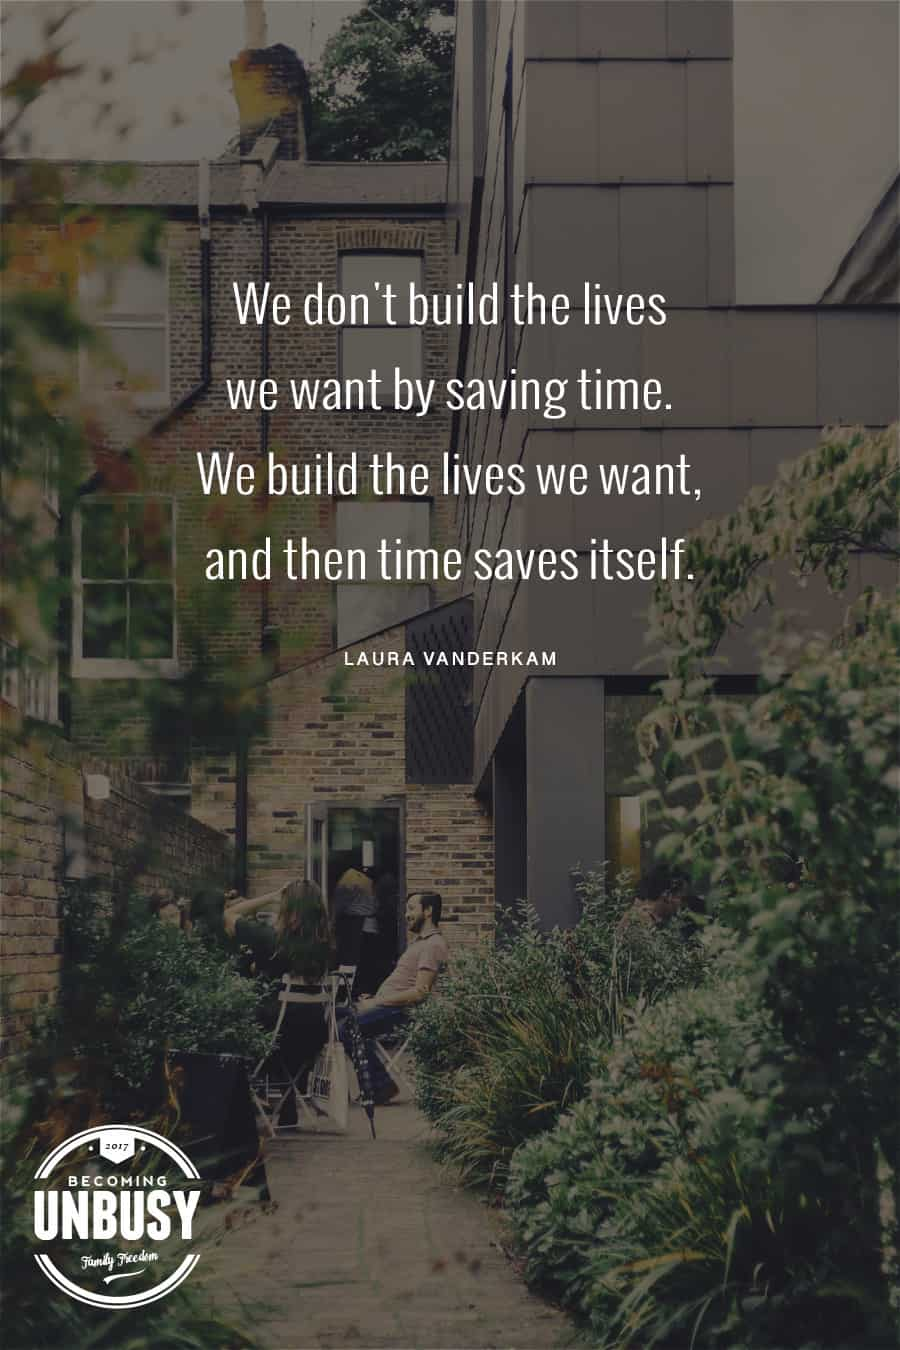 We don't build the lives we want by saving time. We build the lives we want, and then time saves itself. - Laura Vanderkam #quote #TEDTalks #TimeManagement *Great list of TED Talks that will change how you use time. Loving this Becoming UnBusy site!